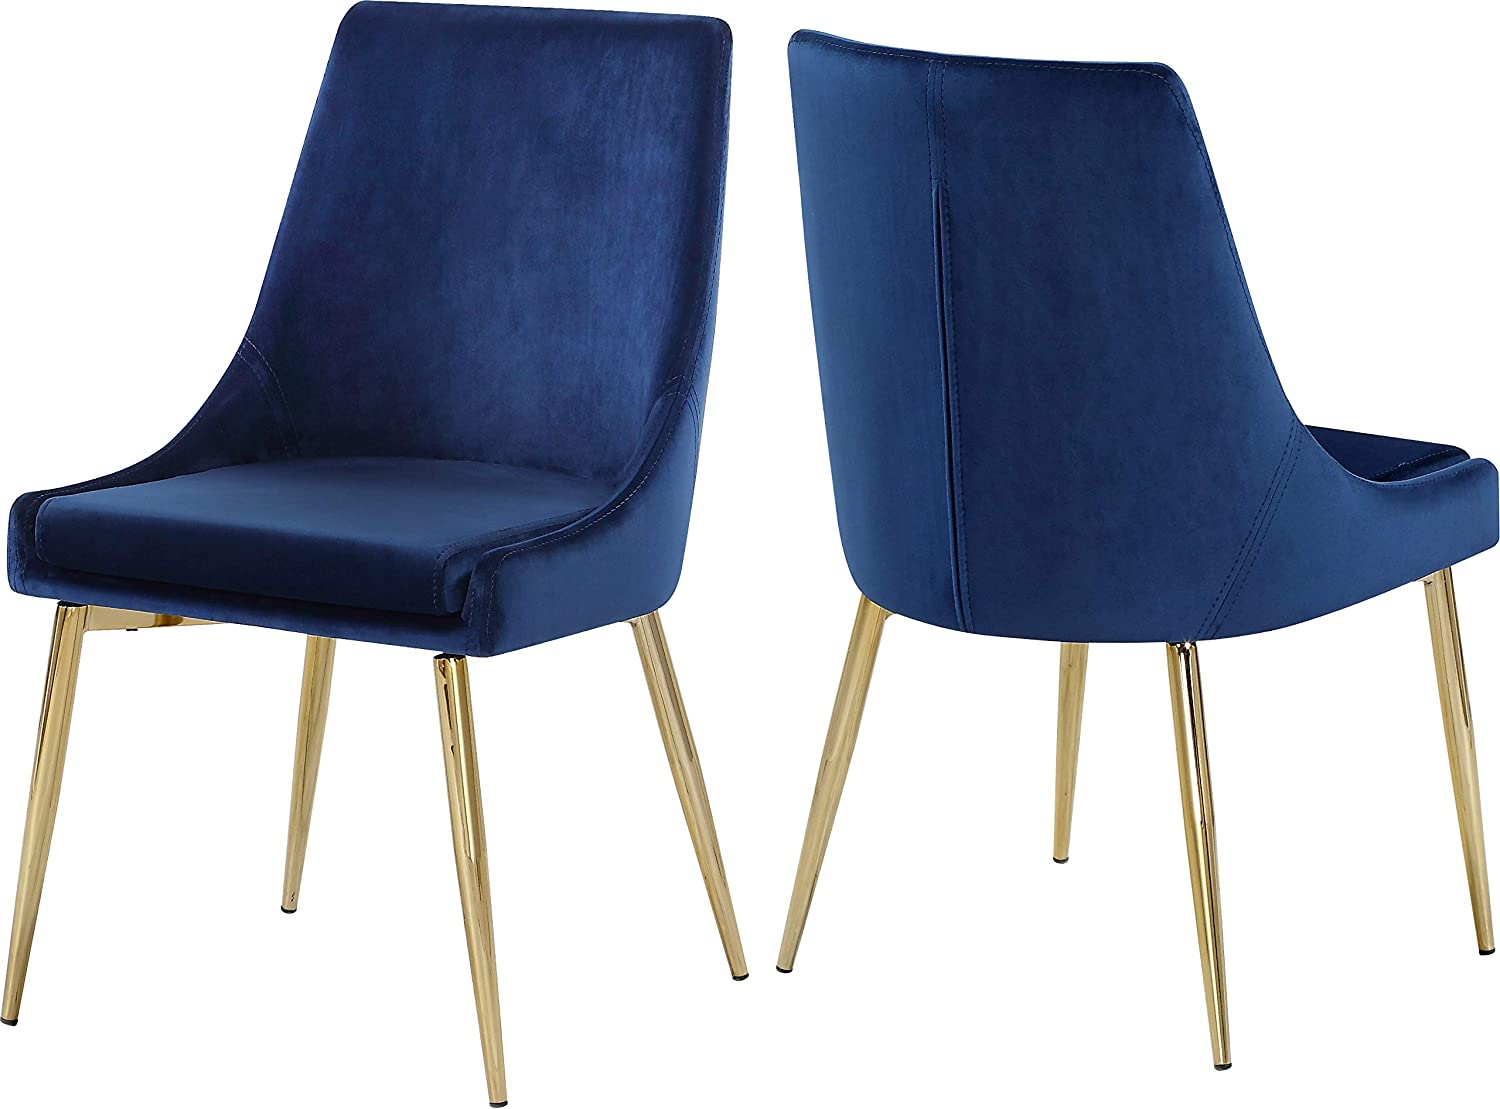 "Meridian Furniture Karina Collection Navy Modern | Contemporary Velvet Upholstered Dining Chair with Polished Gold Metal Legs, Set of 2, 19.5"" W x 21.5"" D x 33.5"" H,"